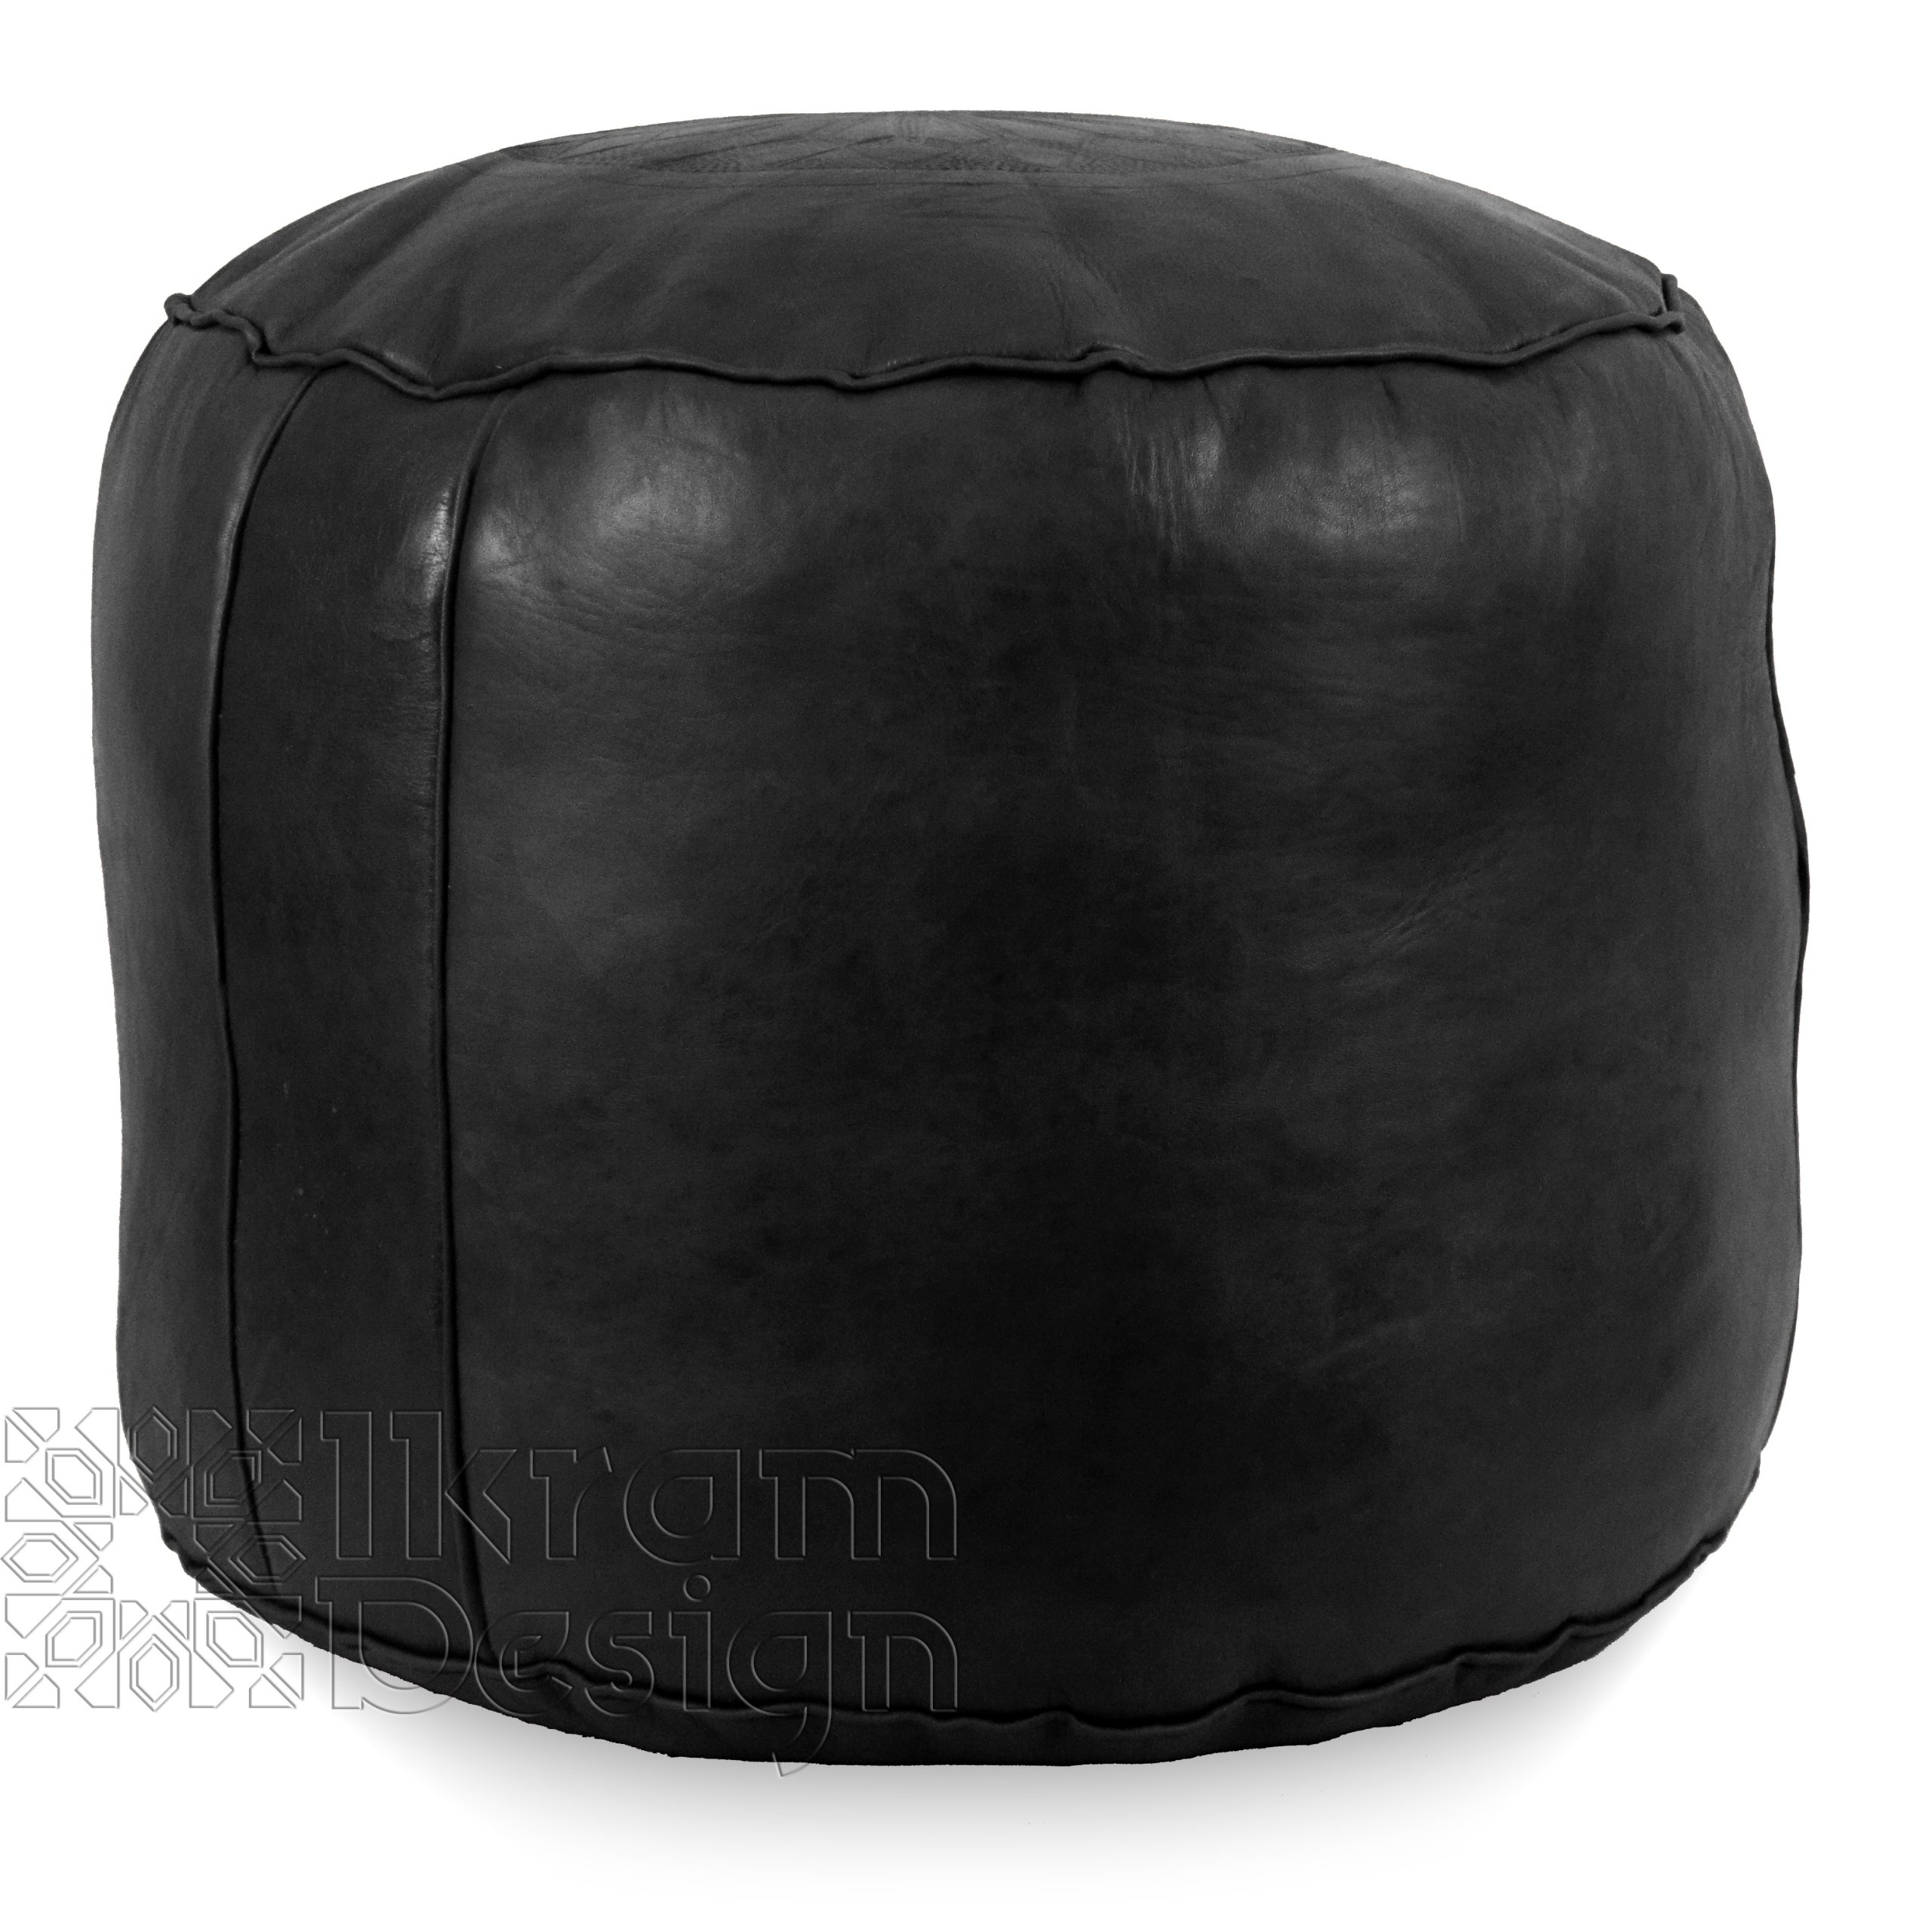 Stuffed Moroccan Pouf, Tabouret Pouffe, Ottoman, Poof, Color : Black by IKRAM DESIGN